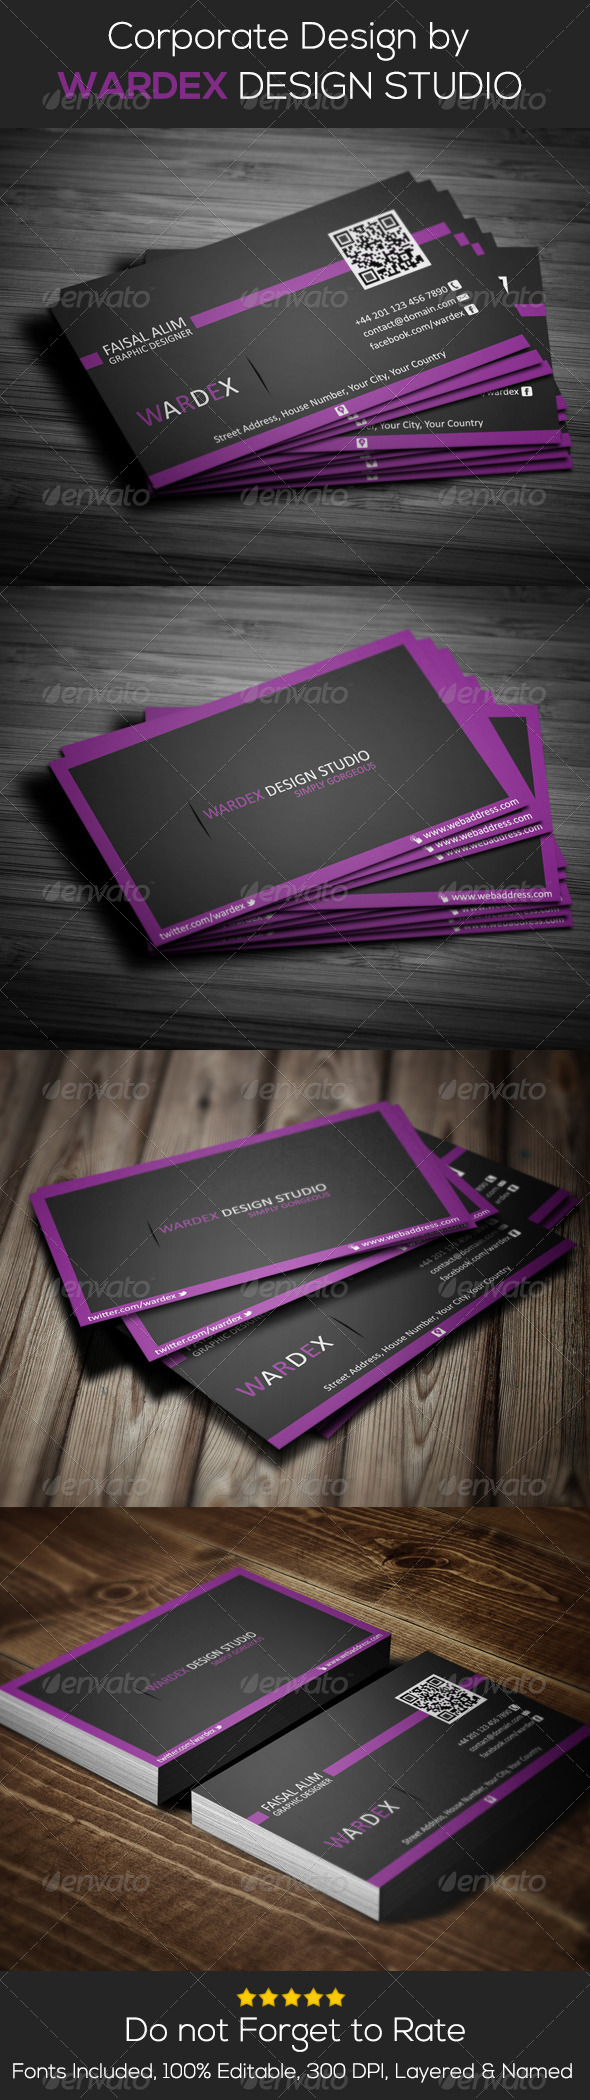 GraphicRiver Corporate & Pro Business Card Design 6901439